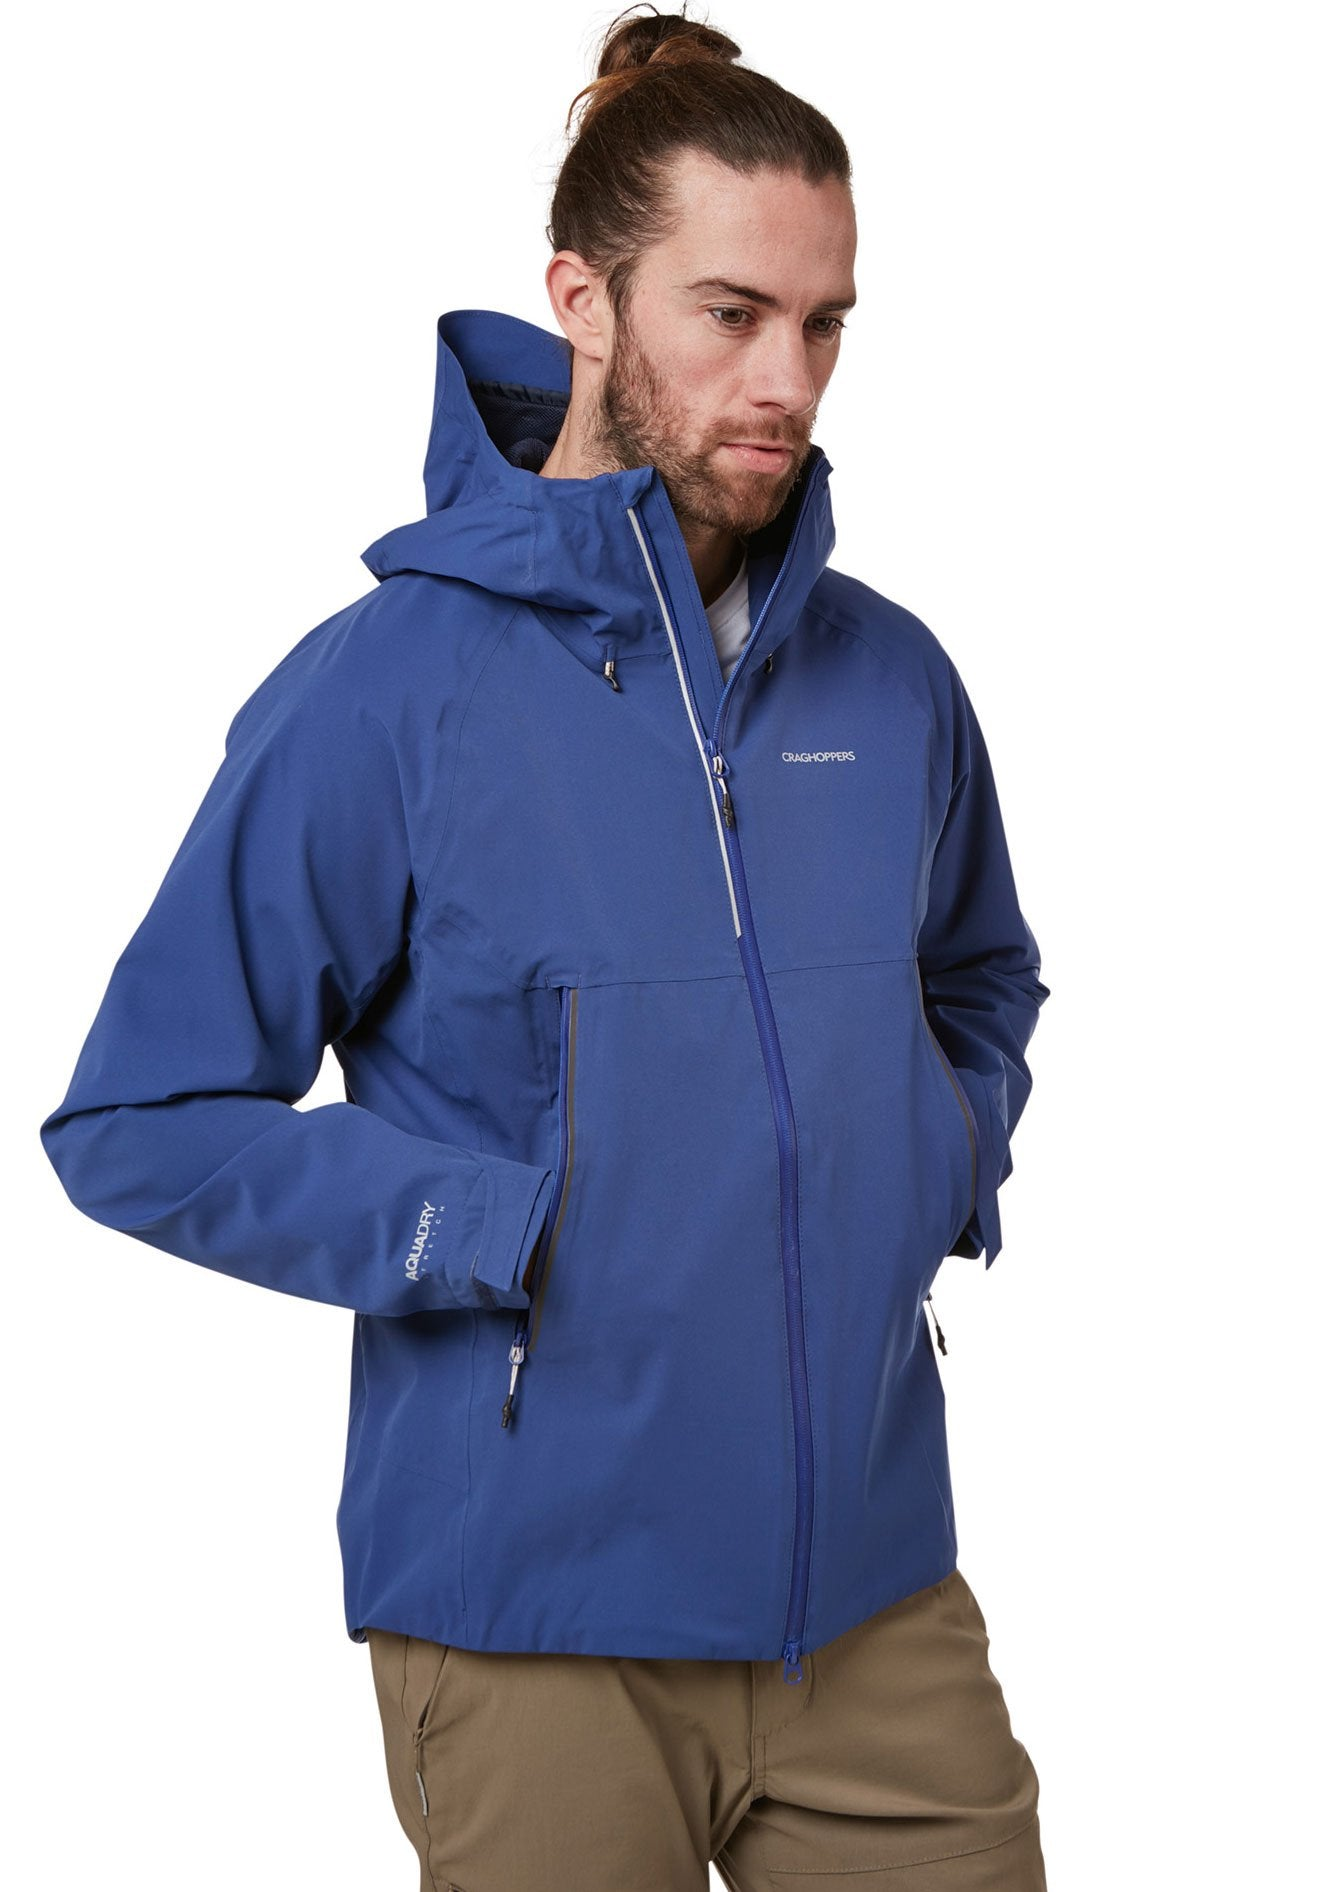 Trelawney Waterproof Breathable Jacket by Craghoppers